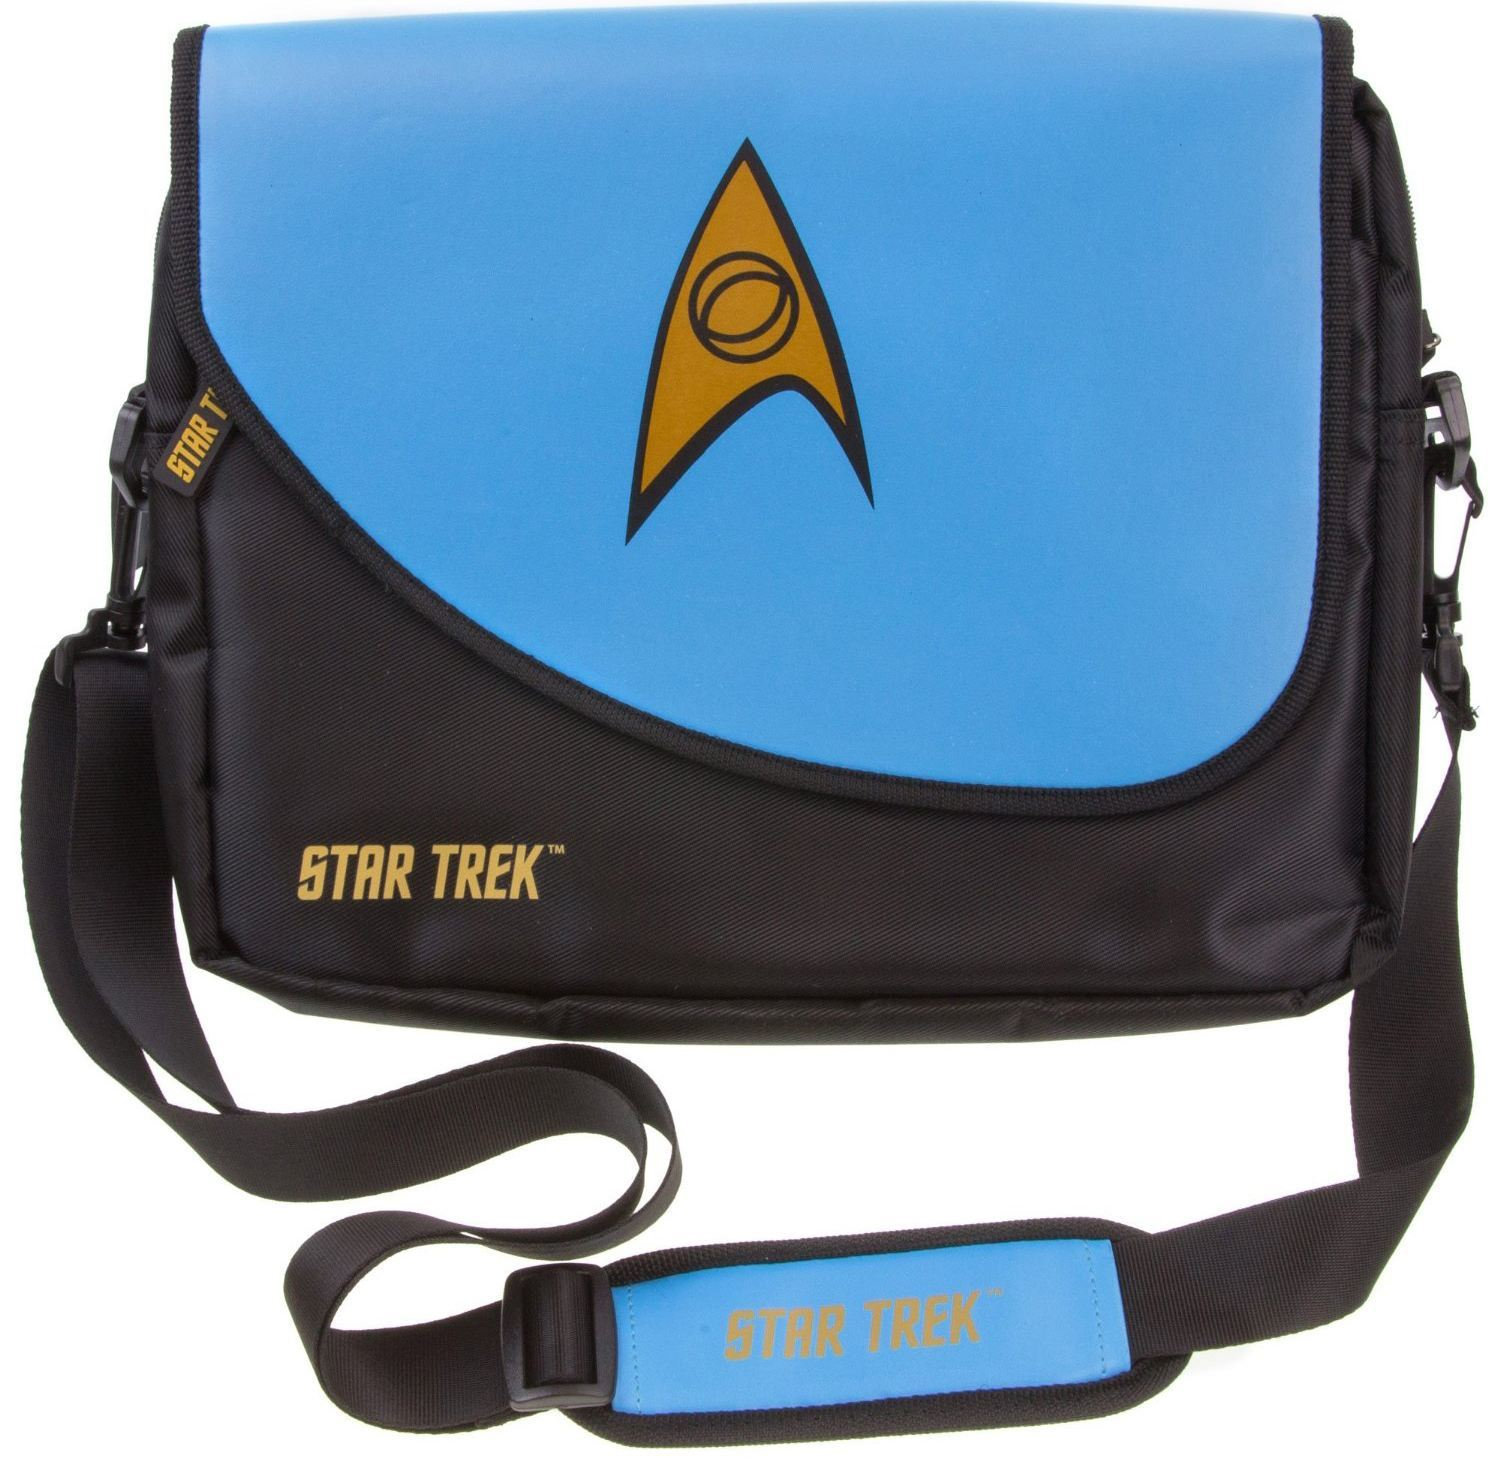 star trek blue uniform laptop bag 2015 hottest geek toys